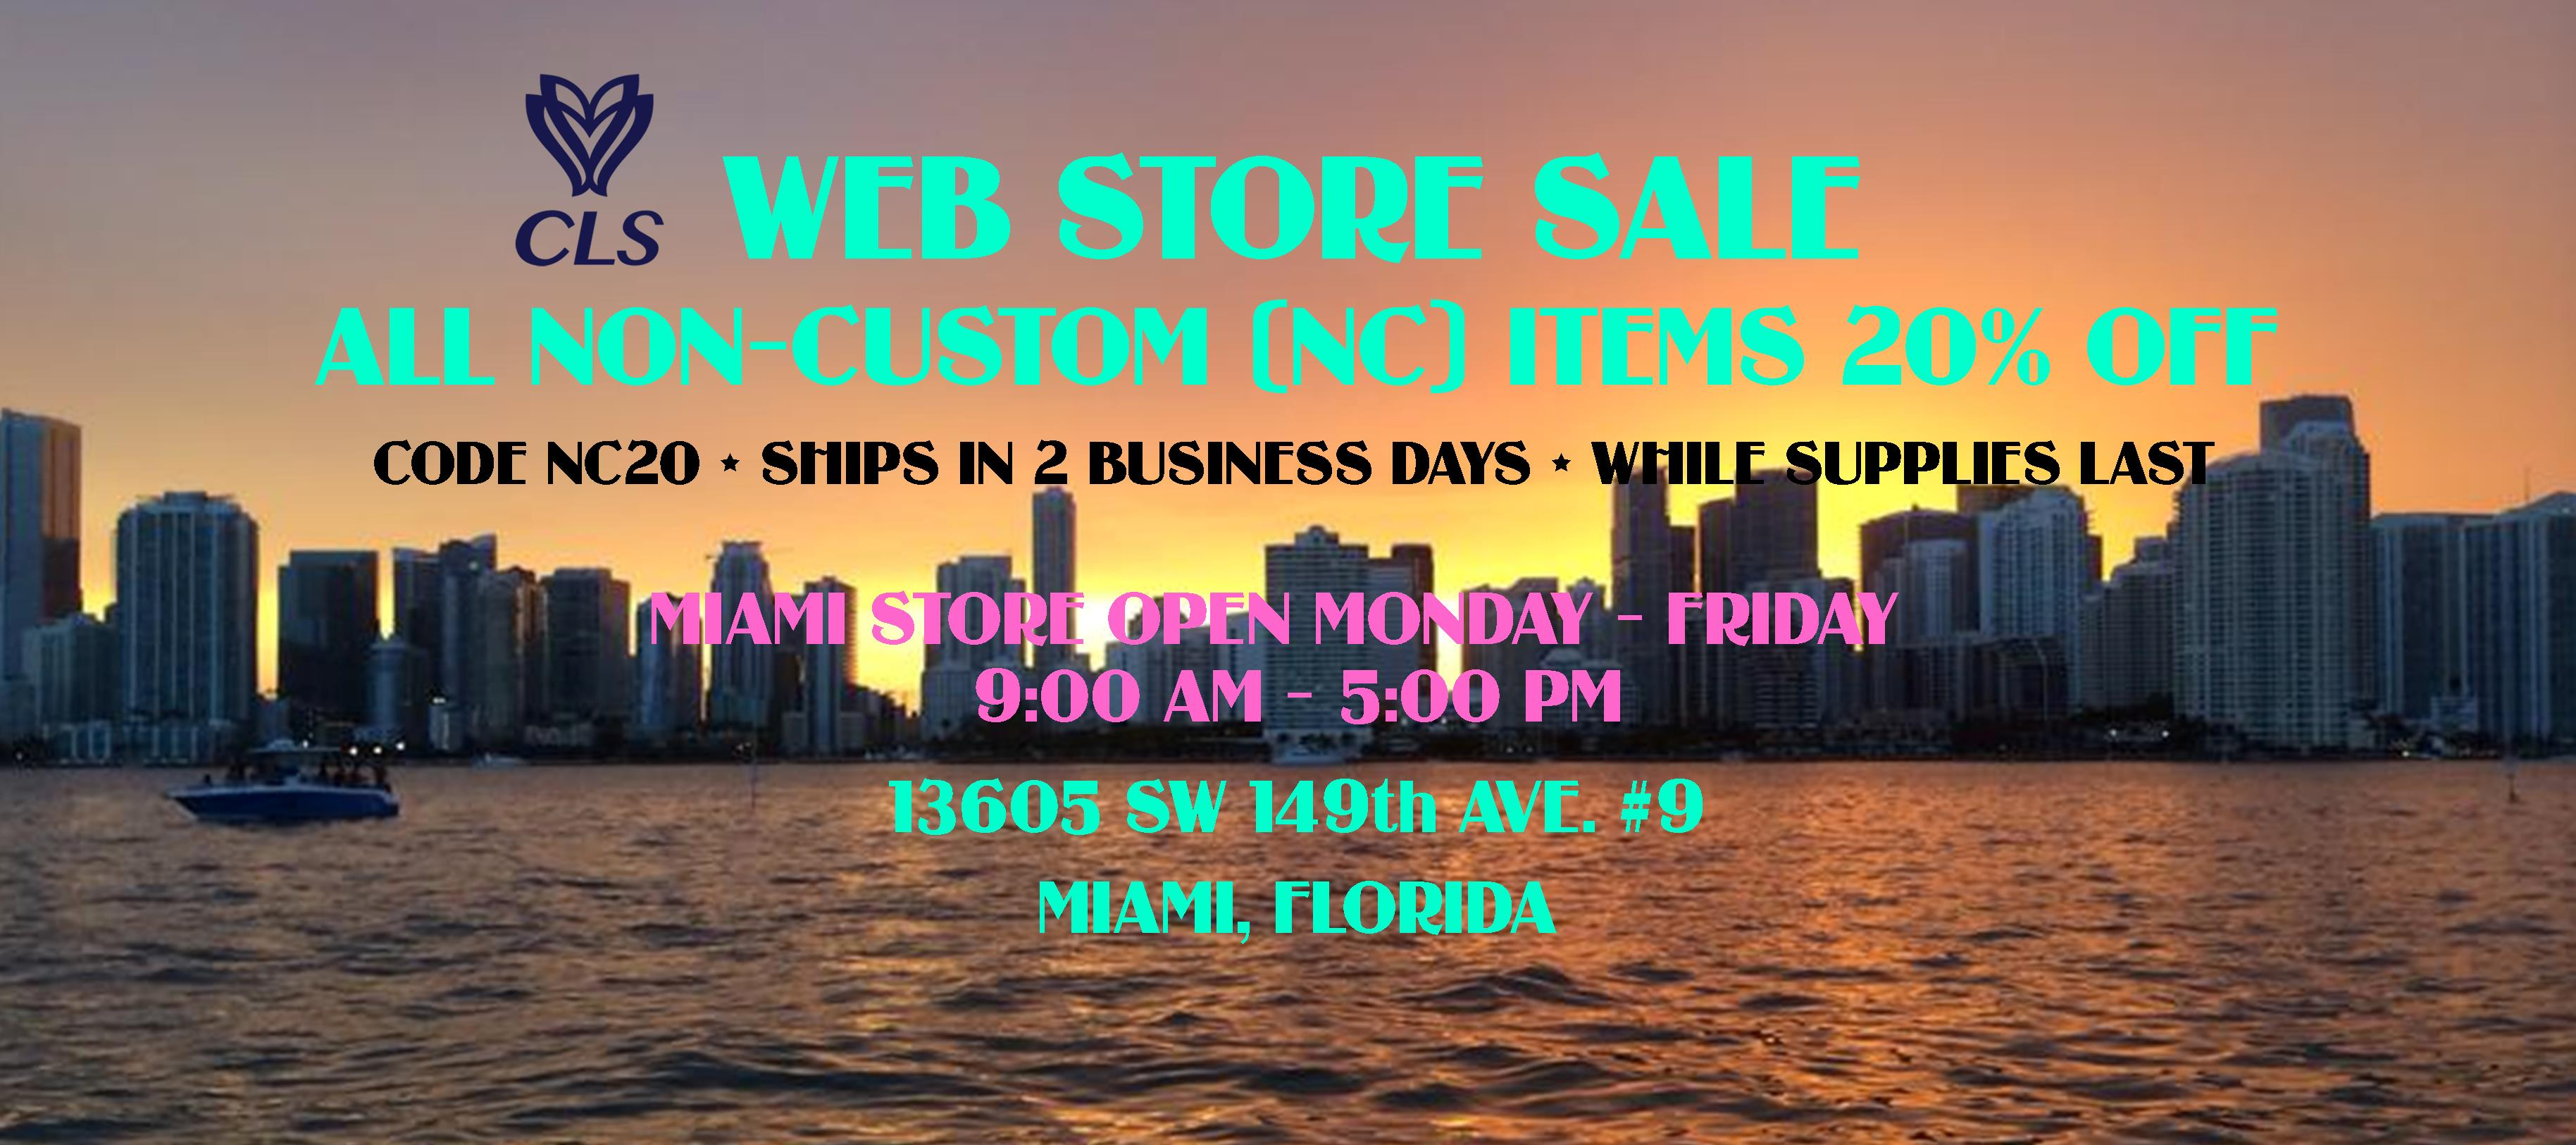 https://www.clssportswear.com/wp-content/uploads/2018/09/Miami_Skyline_webstore_sale.jpg